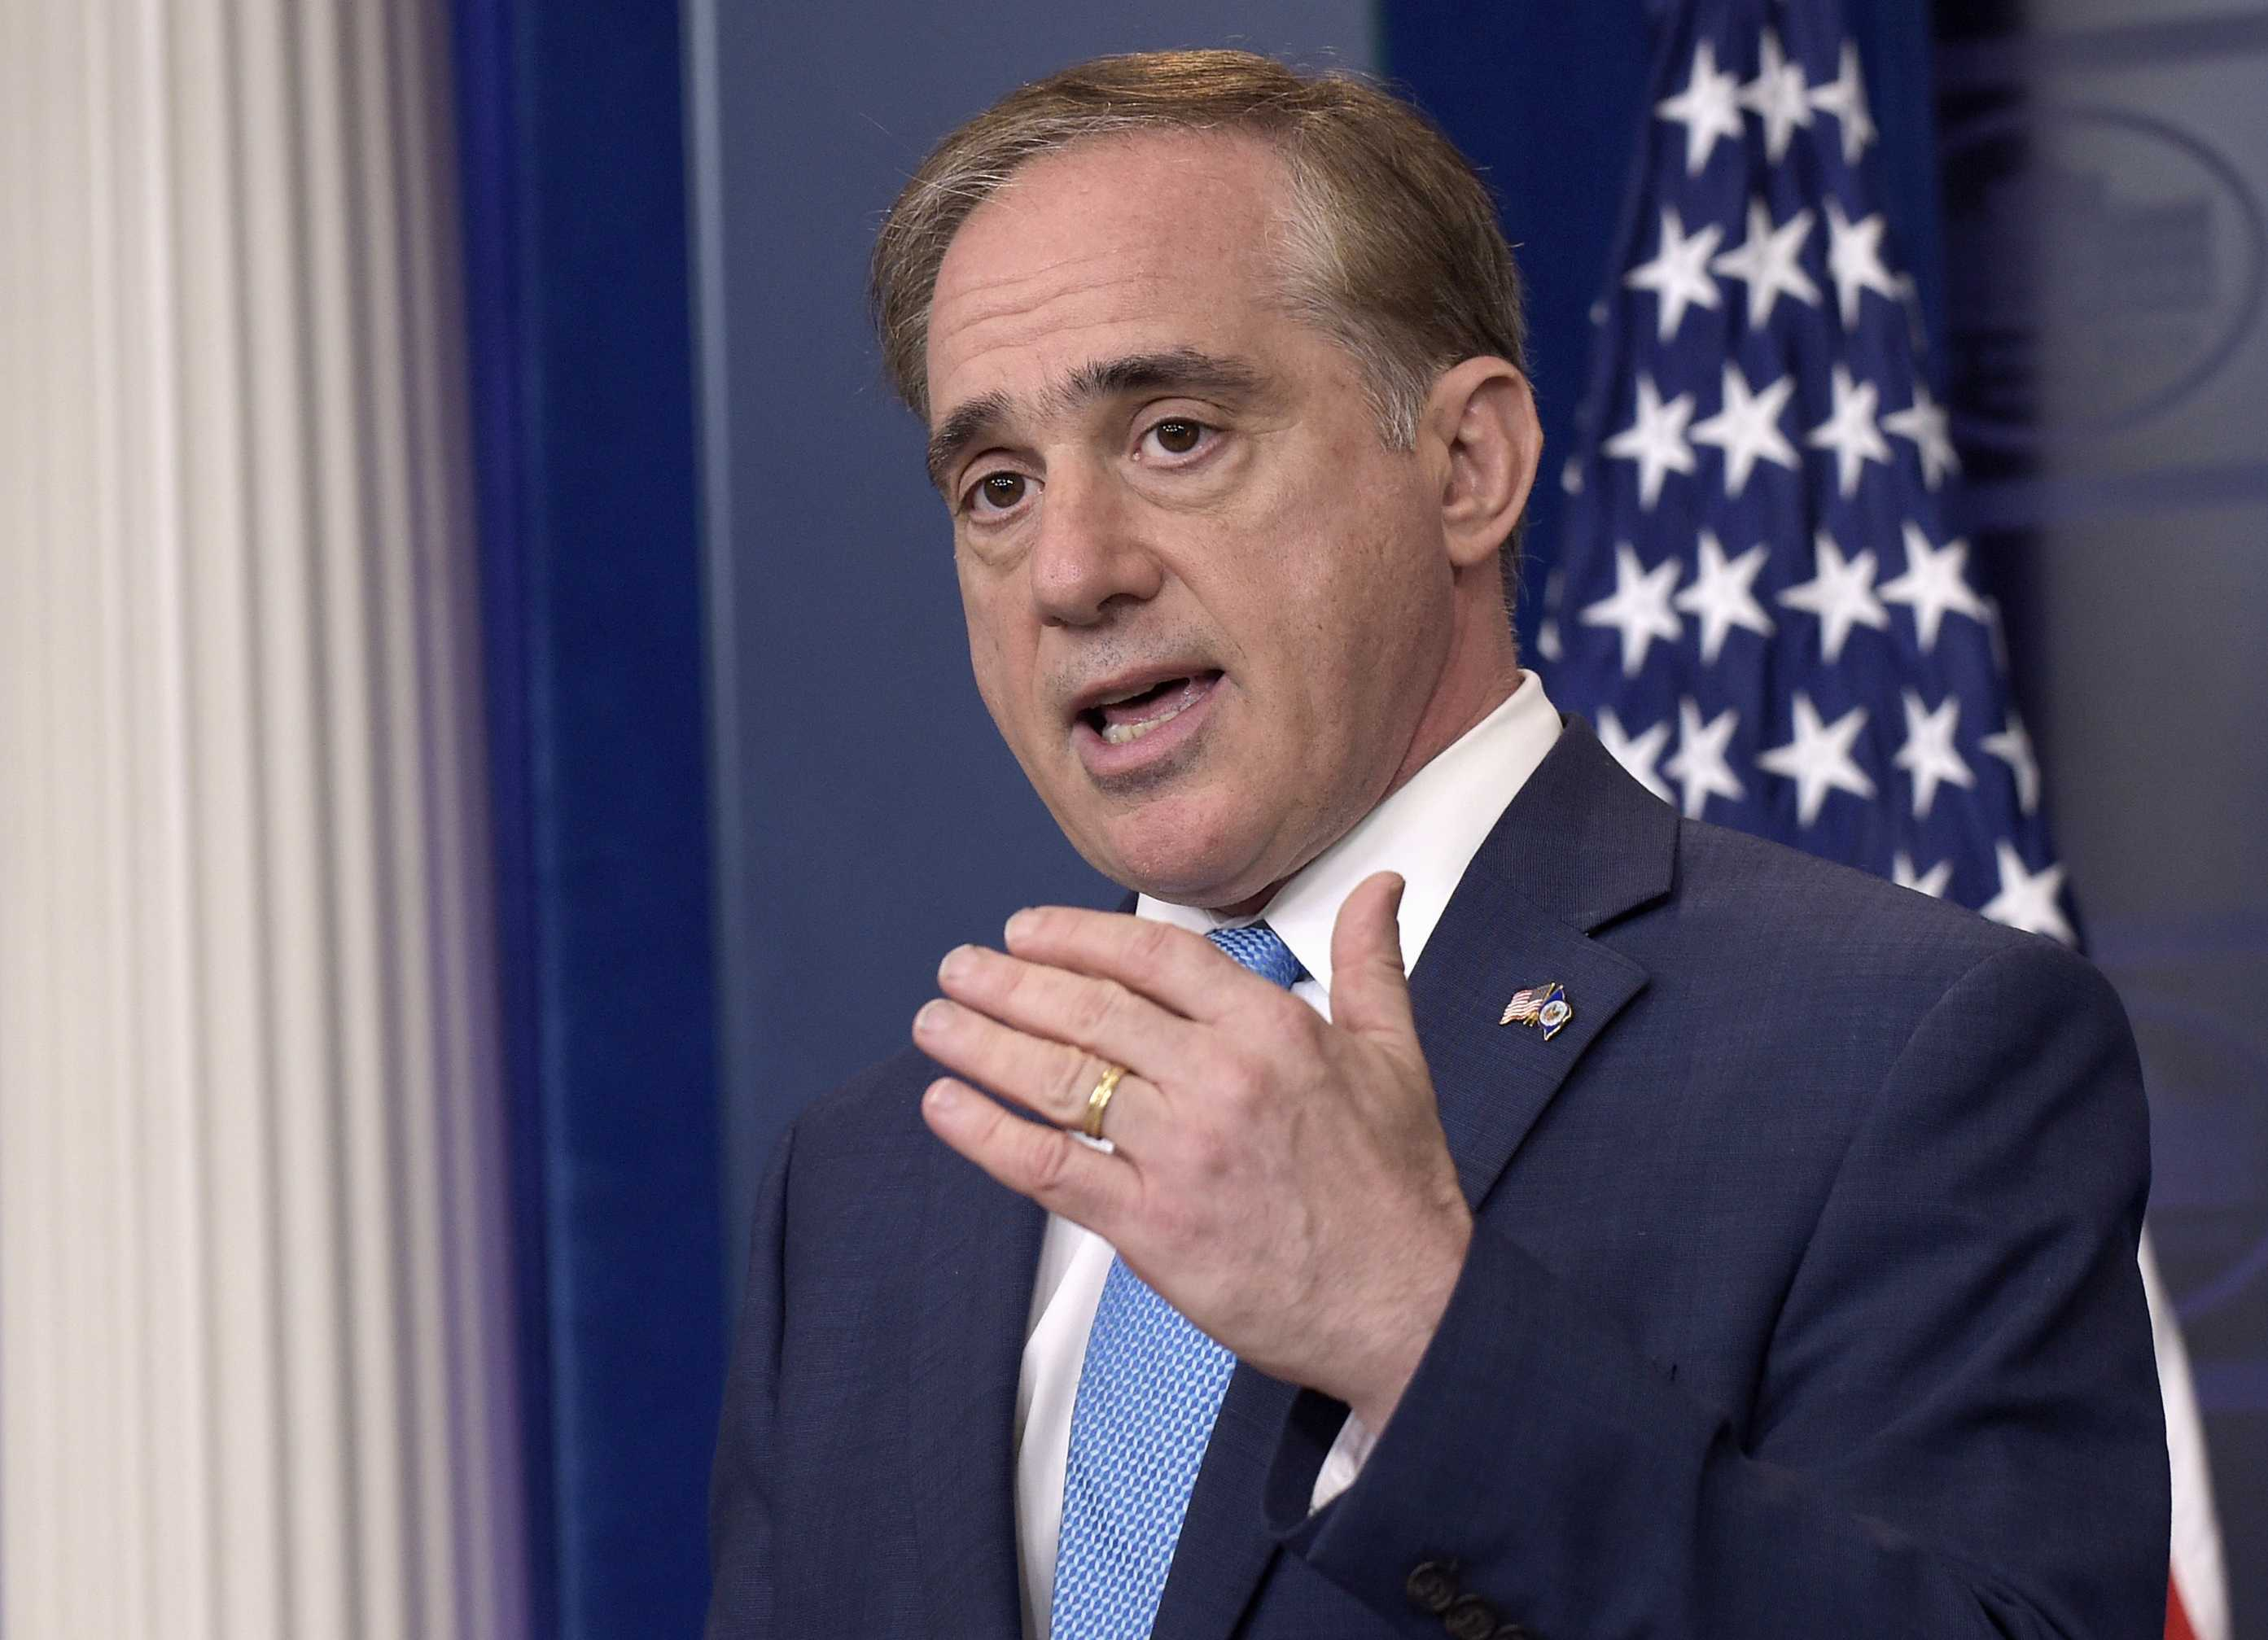 Watchdog says VA Secretary David Shulkin misused federal funds